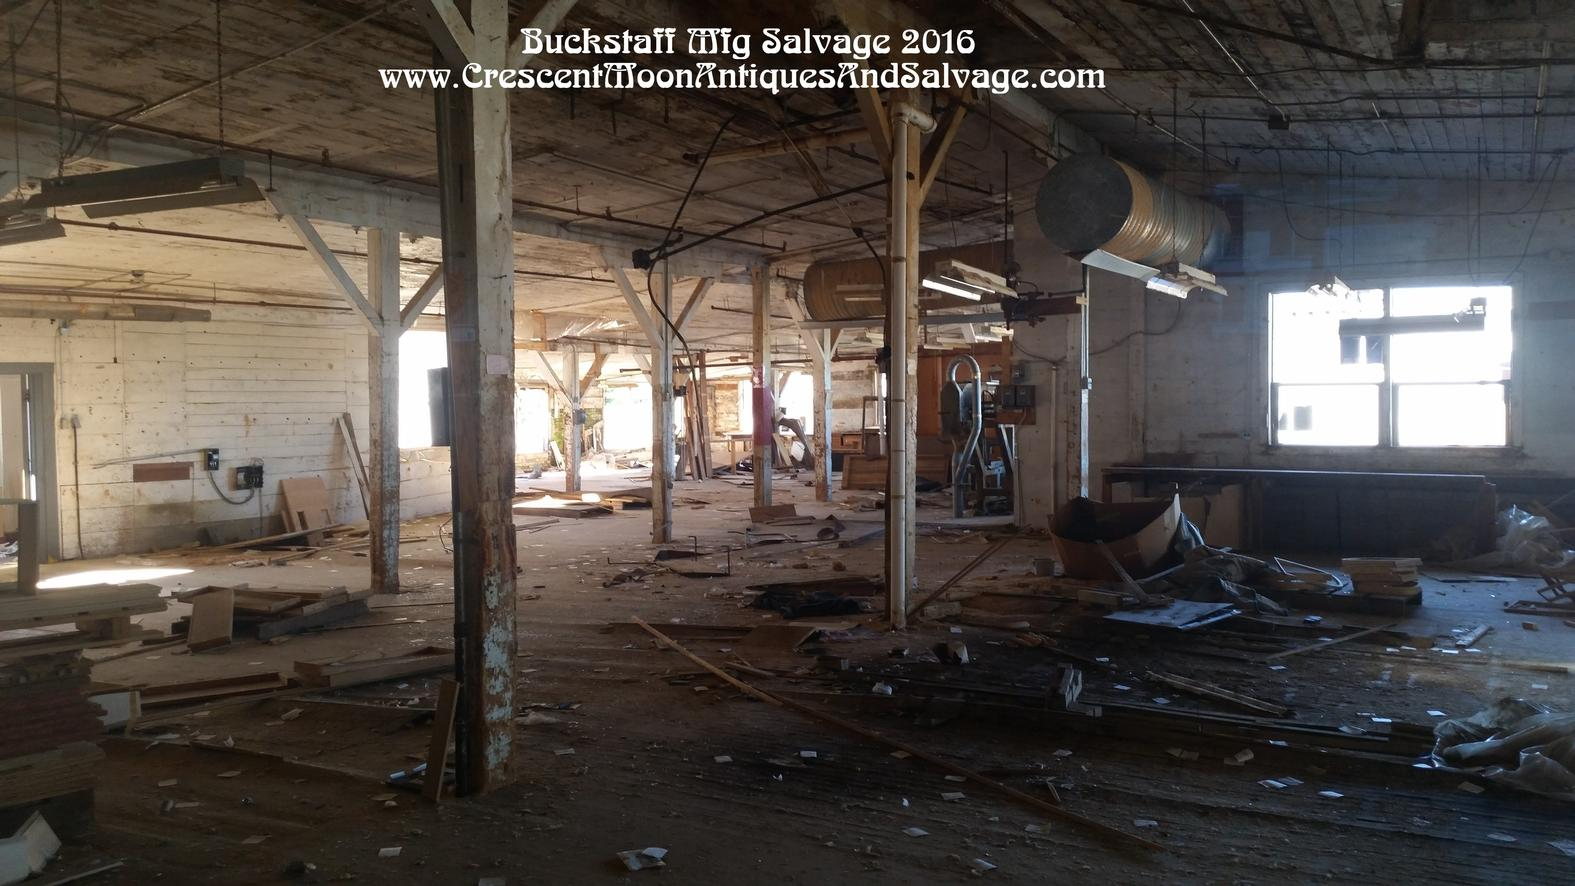 Buckstaff Mfg Salvage